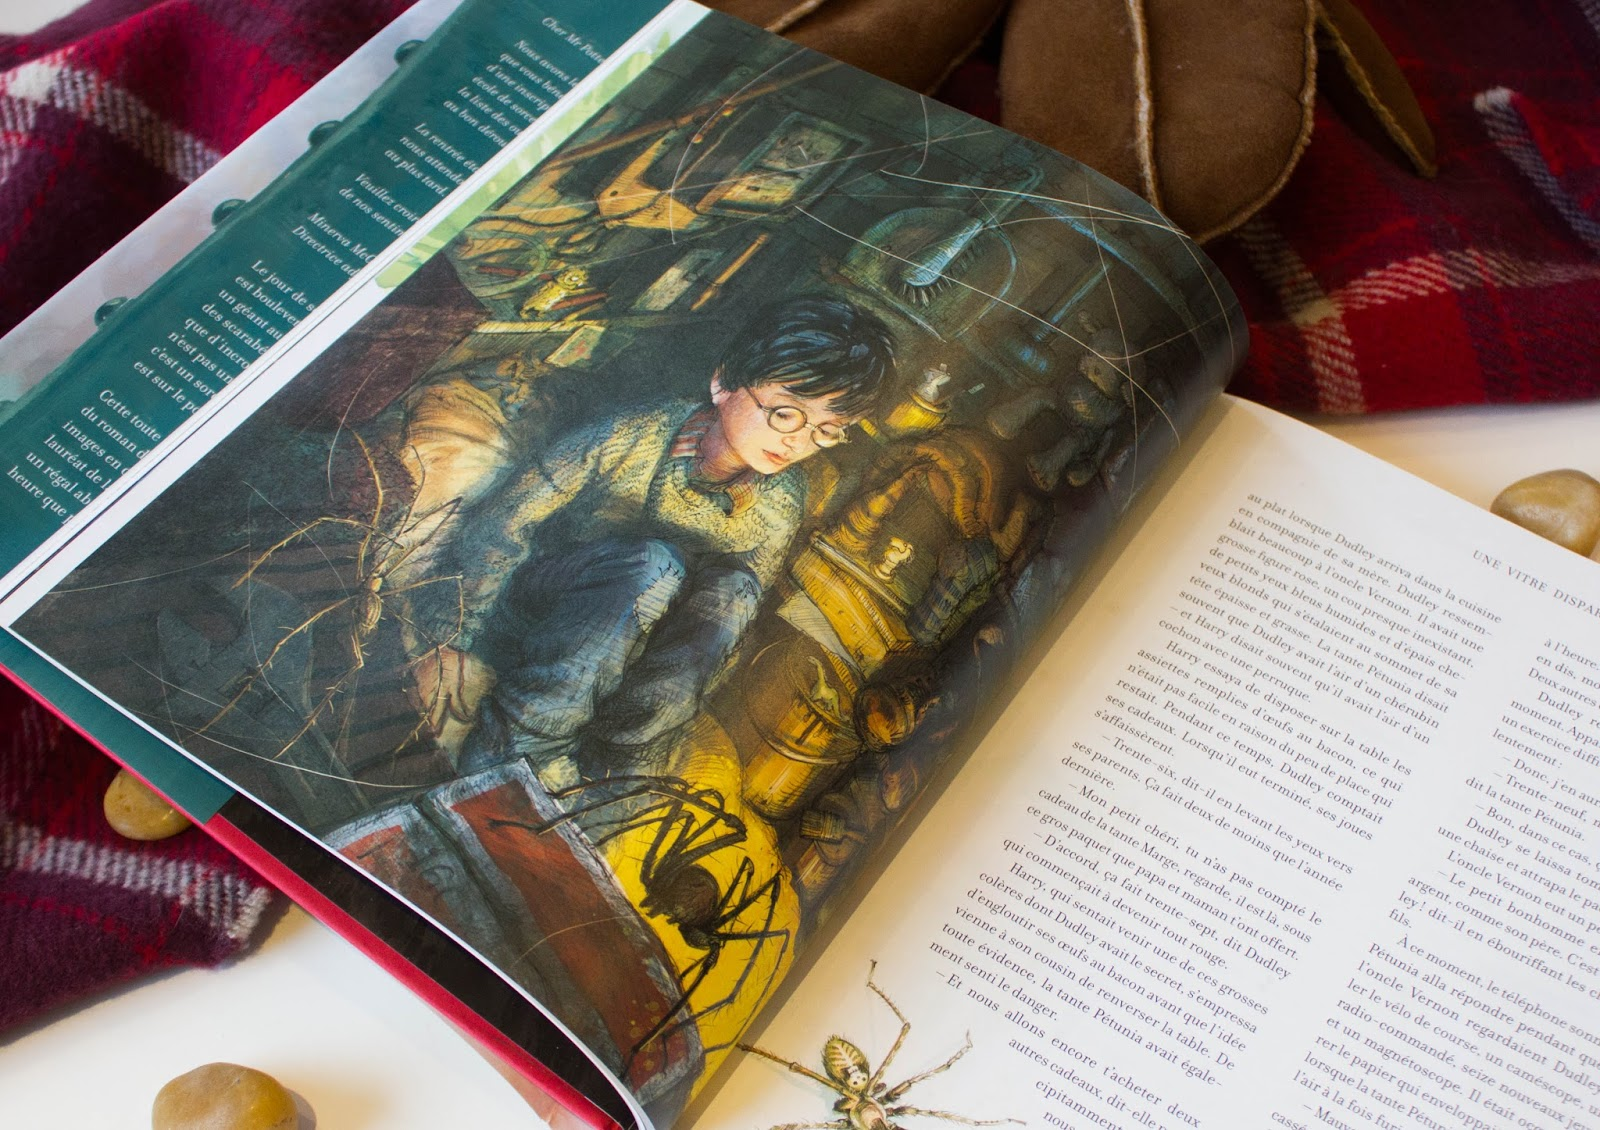 Harry Potter Illustre Par Jim Kay La Bibliotheque De Coeur